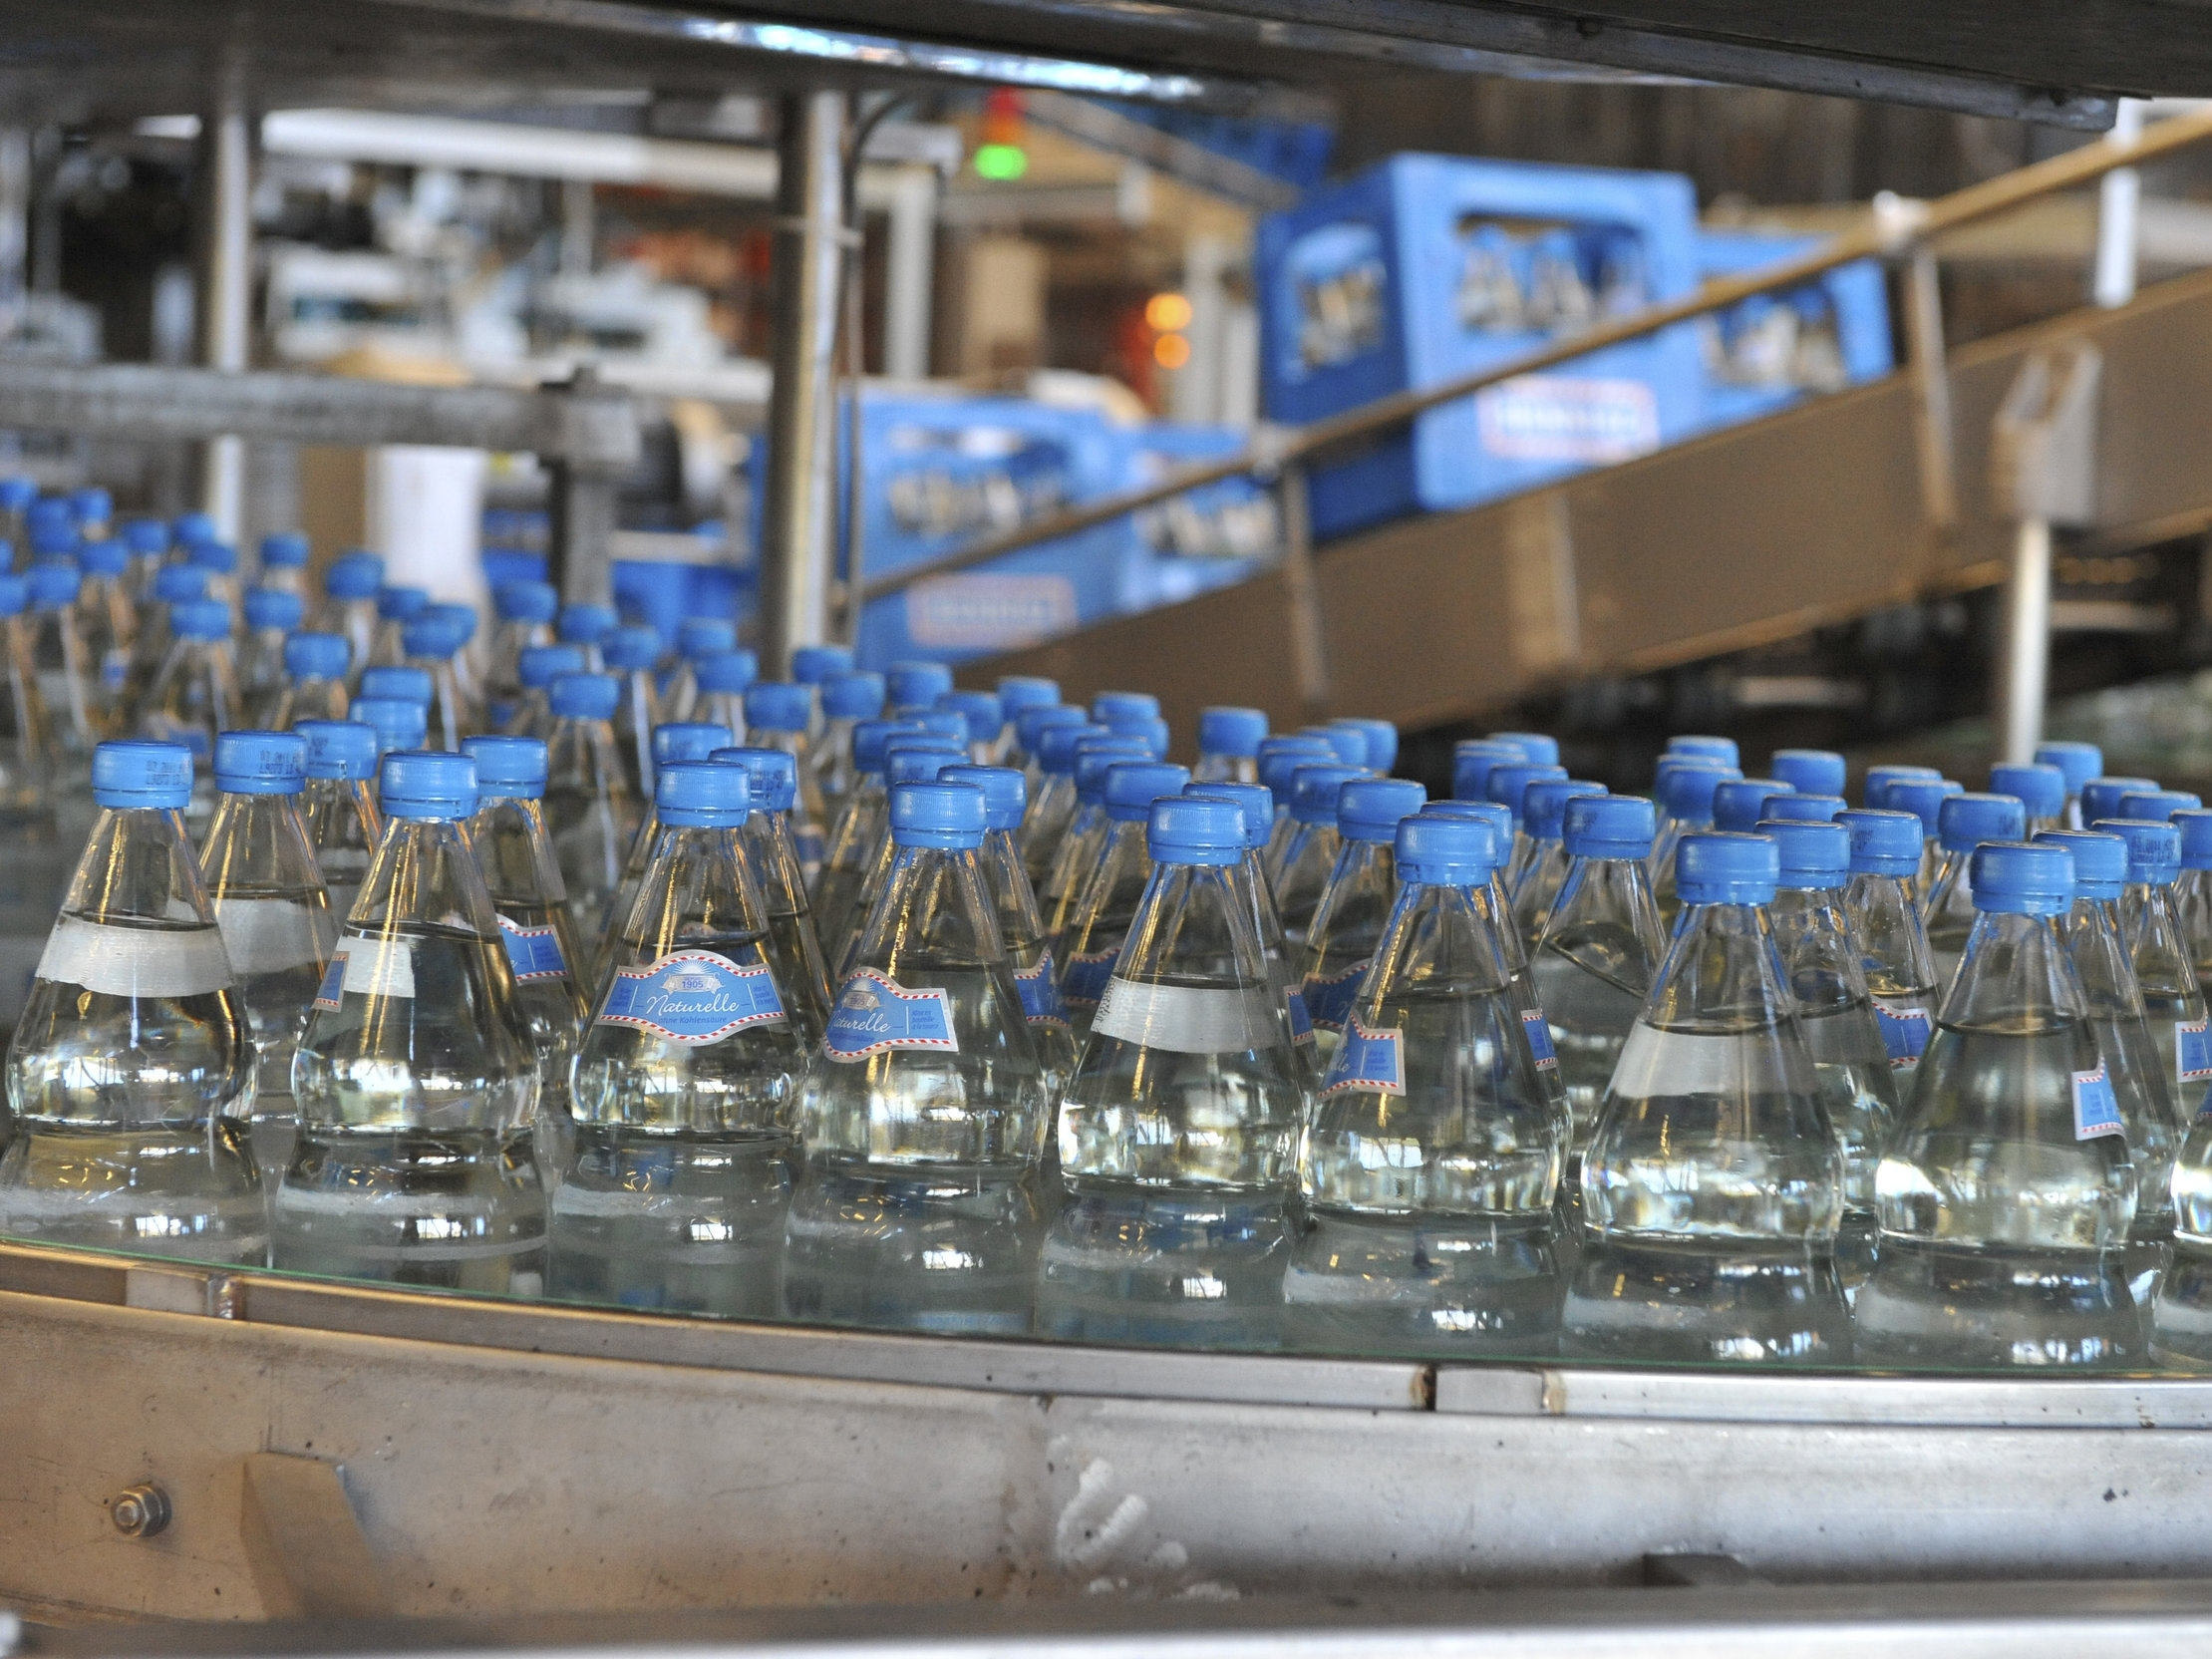 INDUSTRY. - A simple quality control test for the packaged water industry, and other industries where E. coli testing is required.